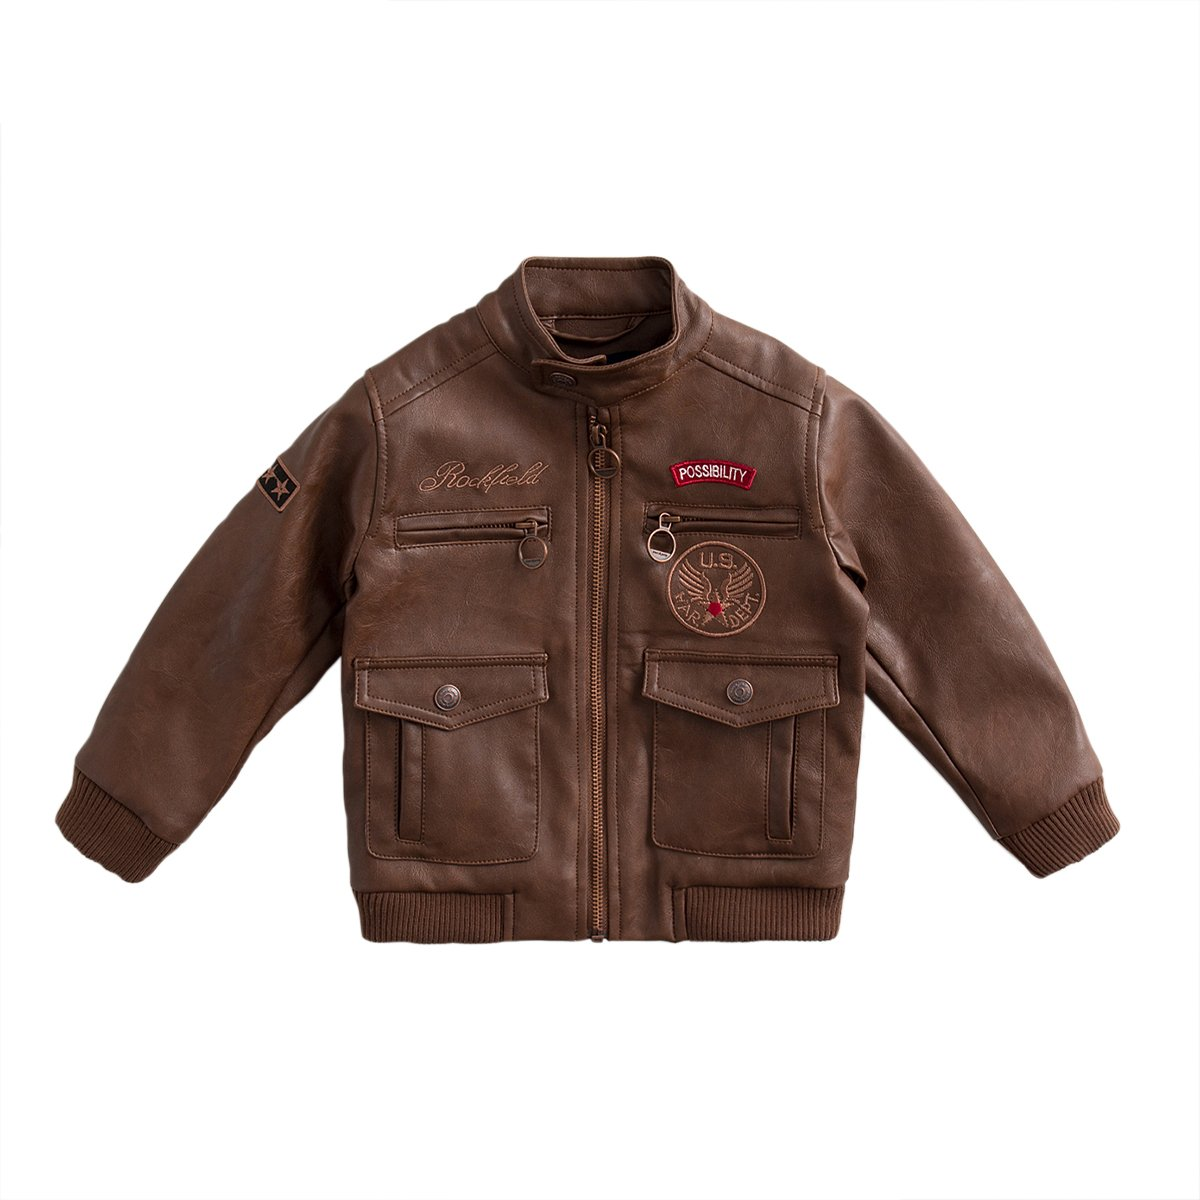 marc janie Baby Toddler Boys' Military Flight Leather Bomber Jacket Coffee 24 Months